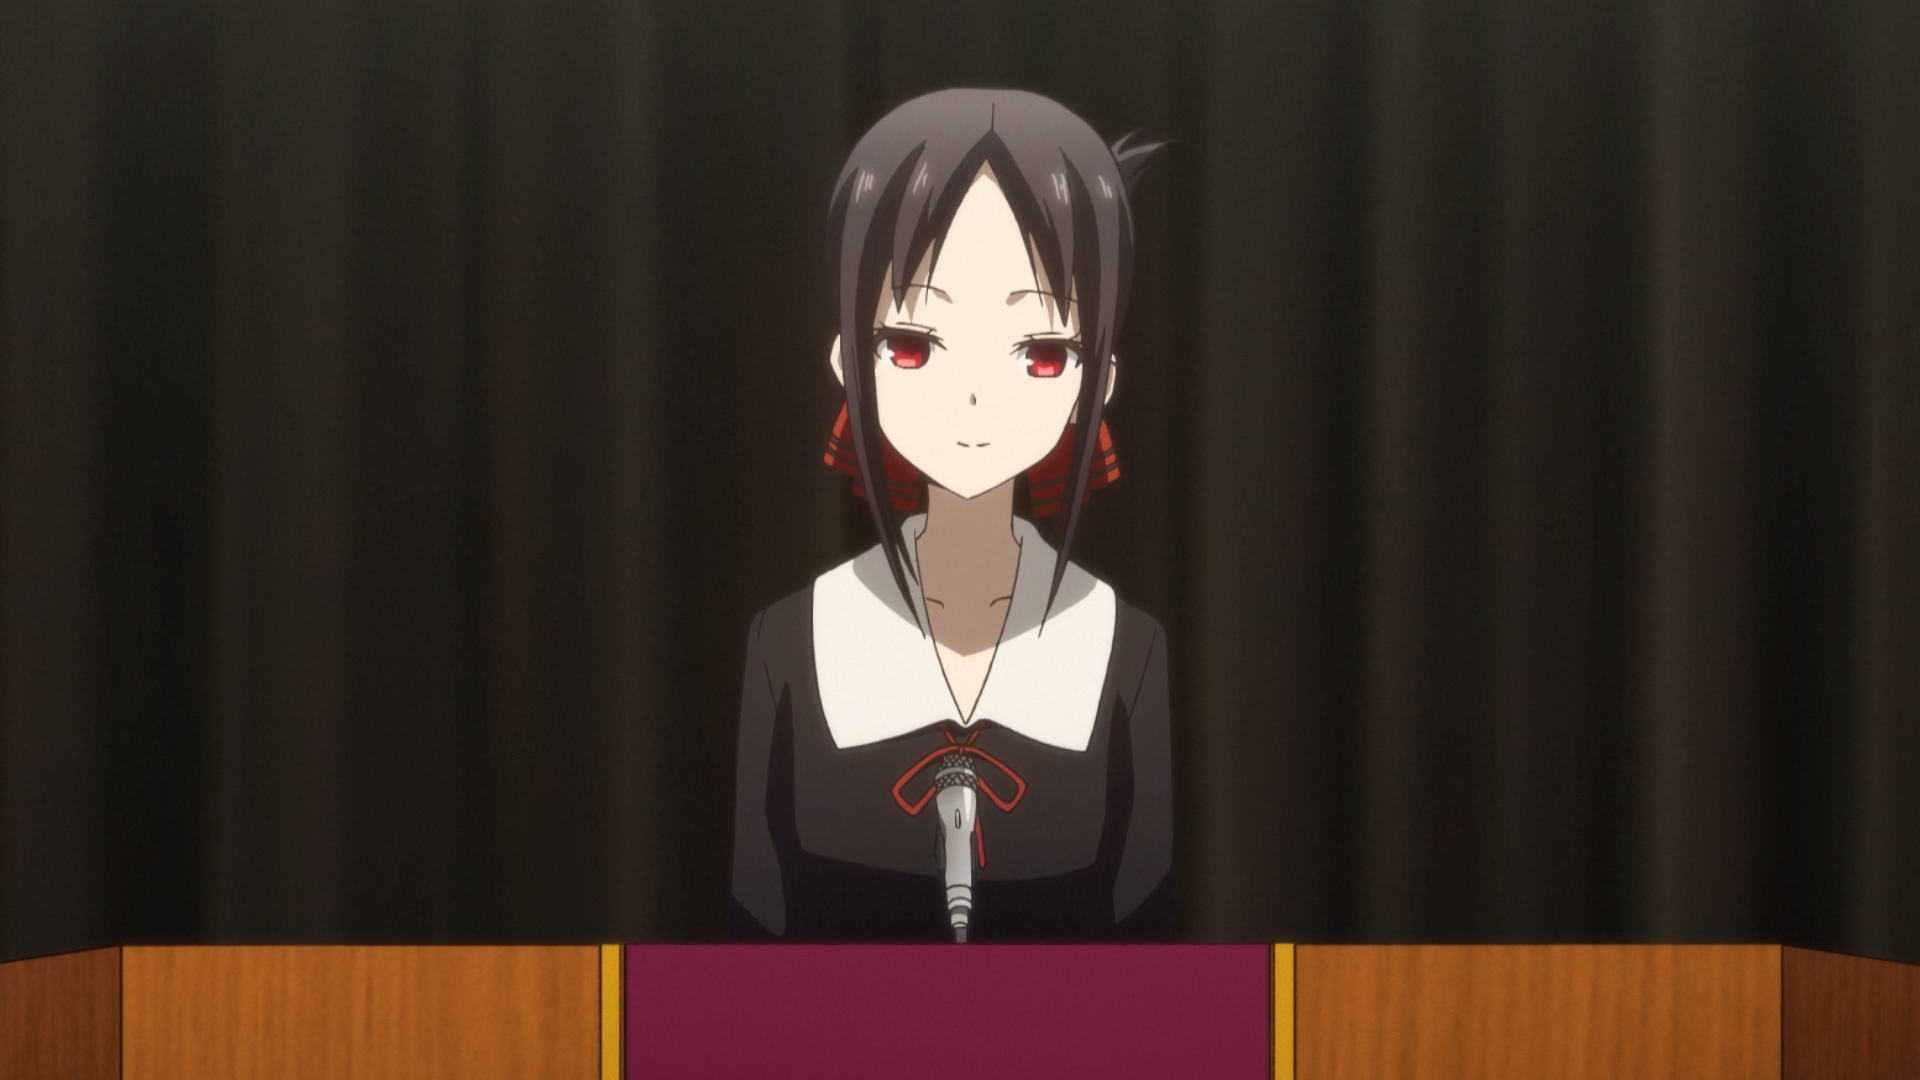 Kaguya Shinomiya in Kaguya Sama love is war season 2 episode 6